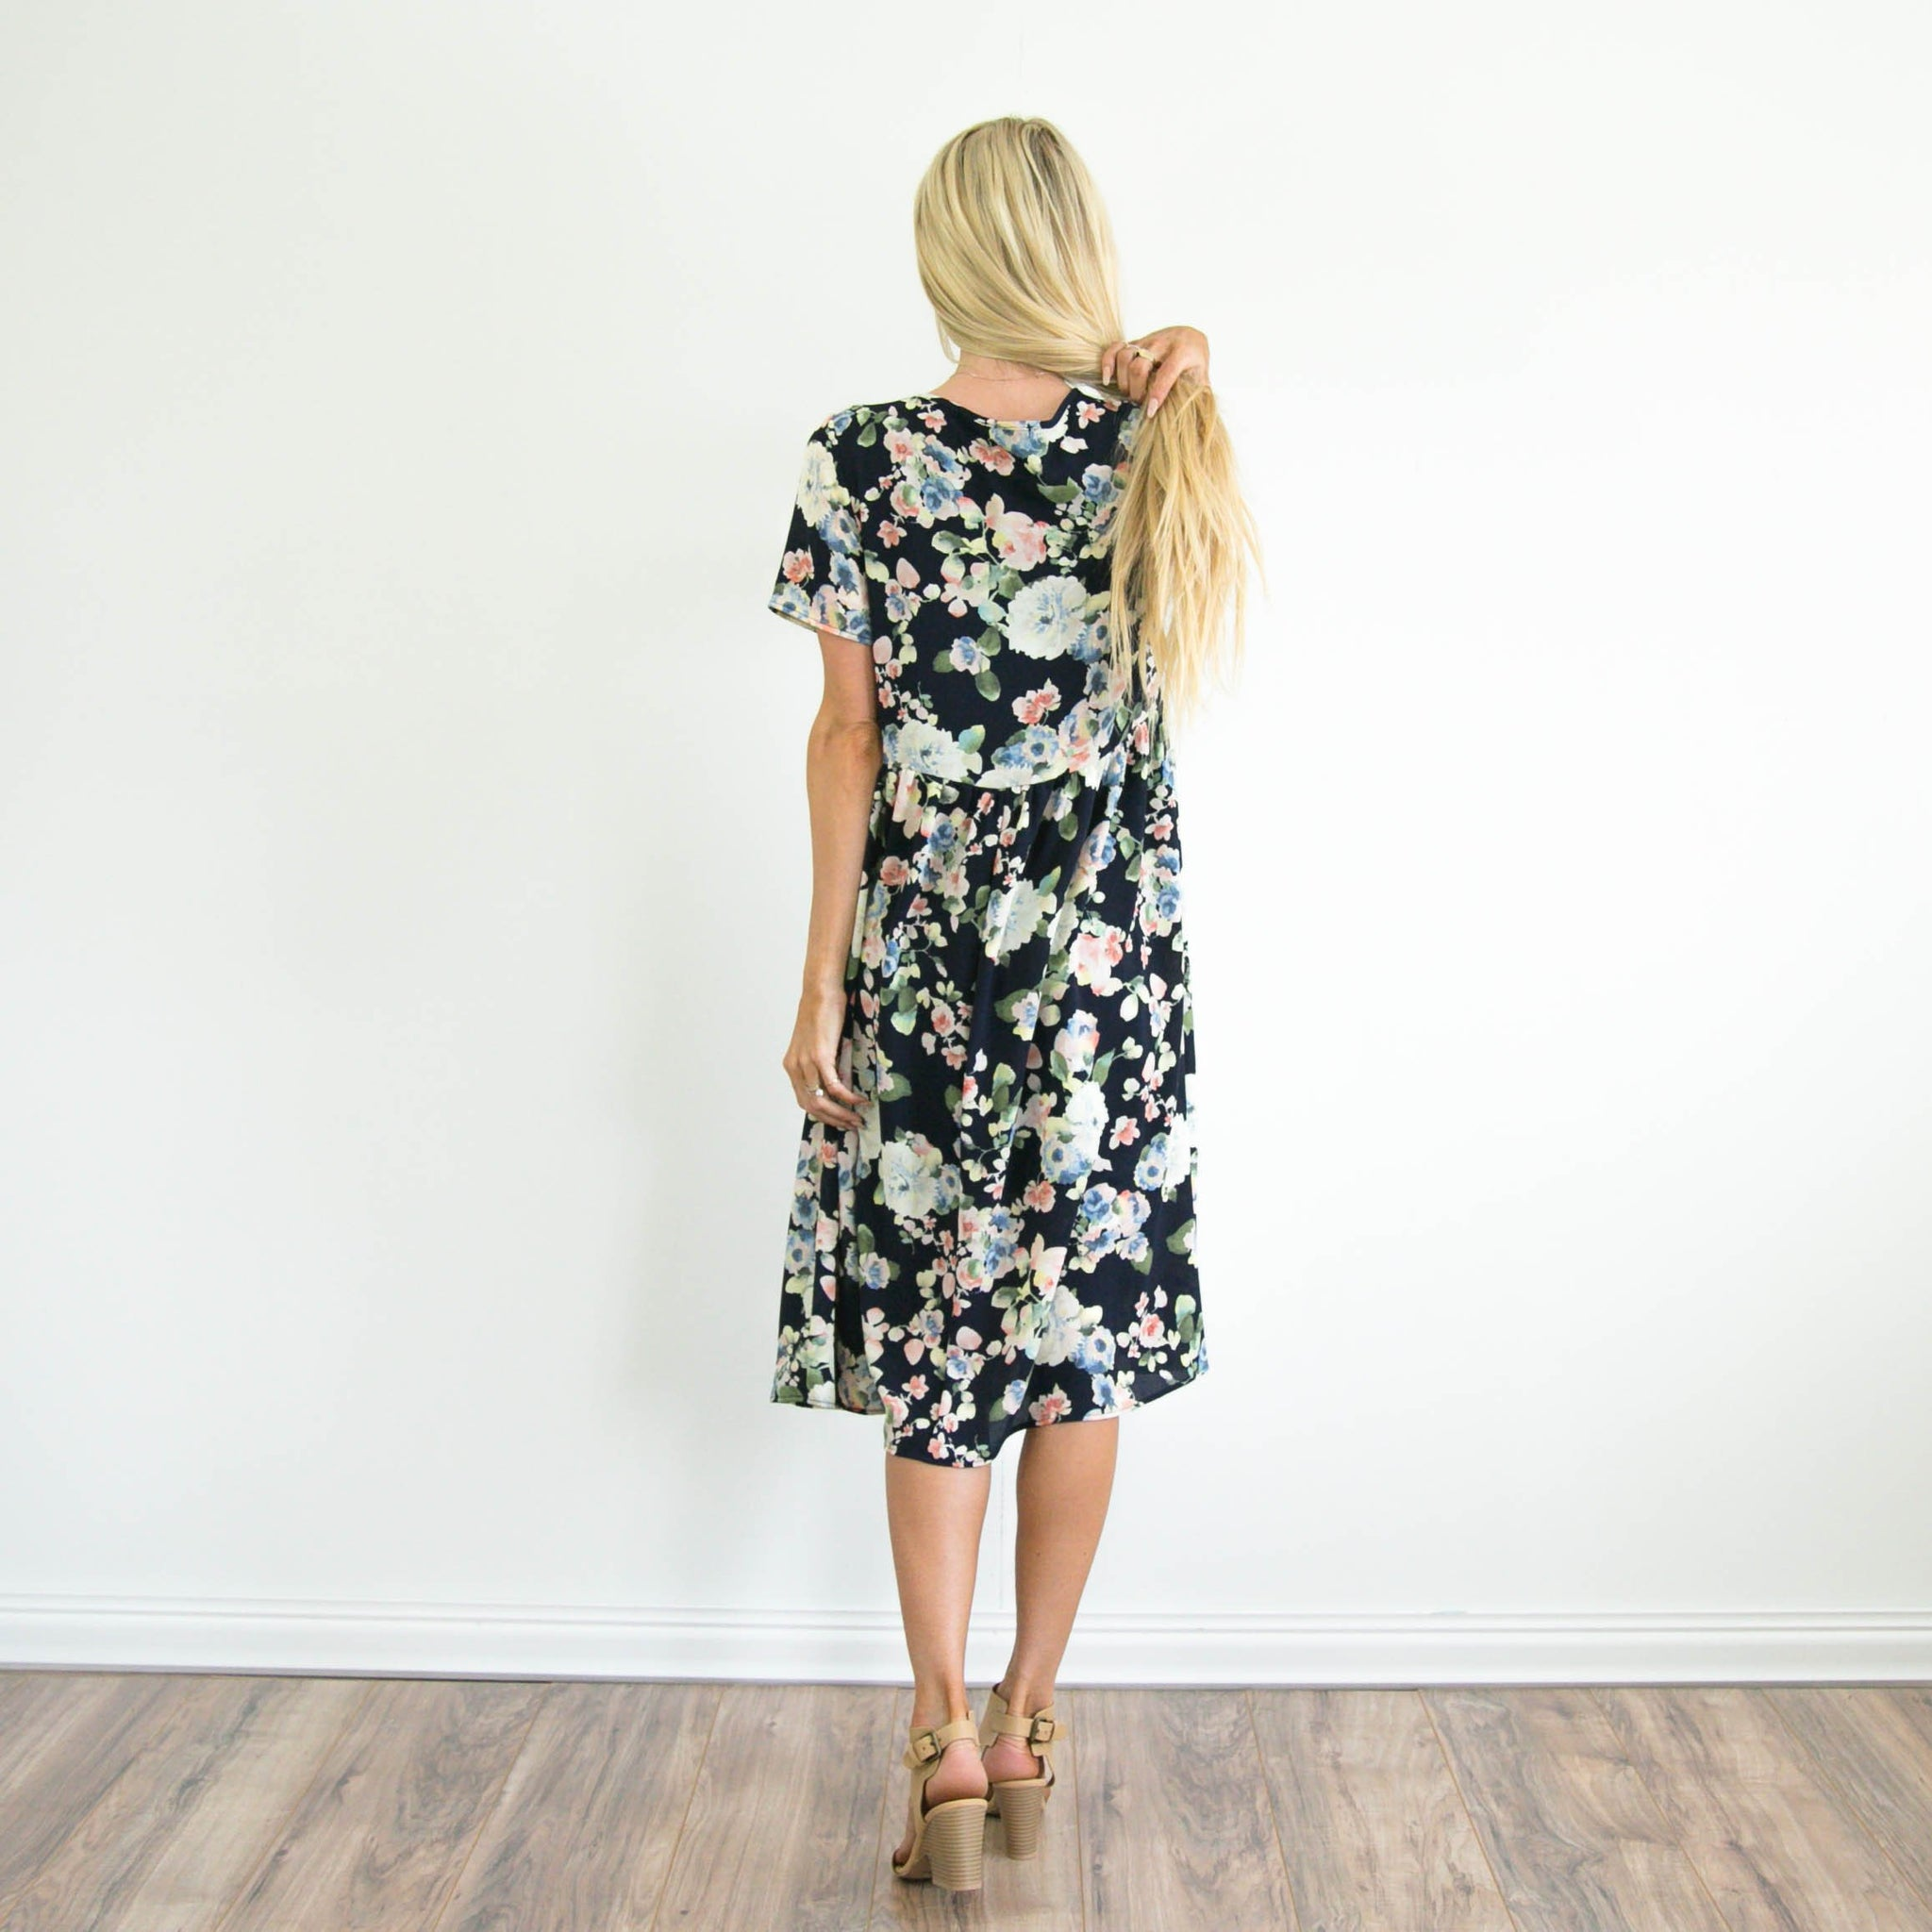 S & Co. Brin Floral Dress